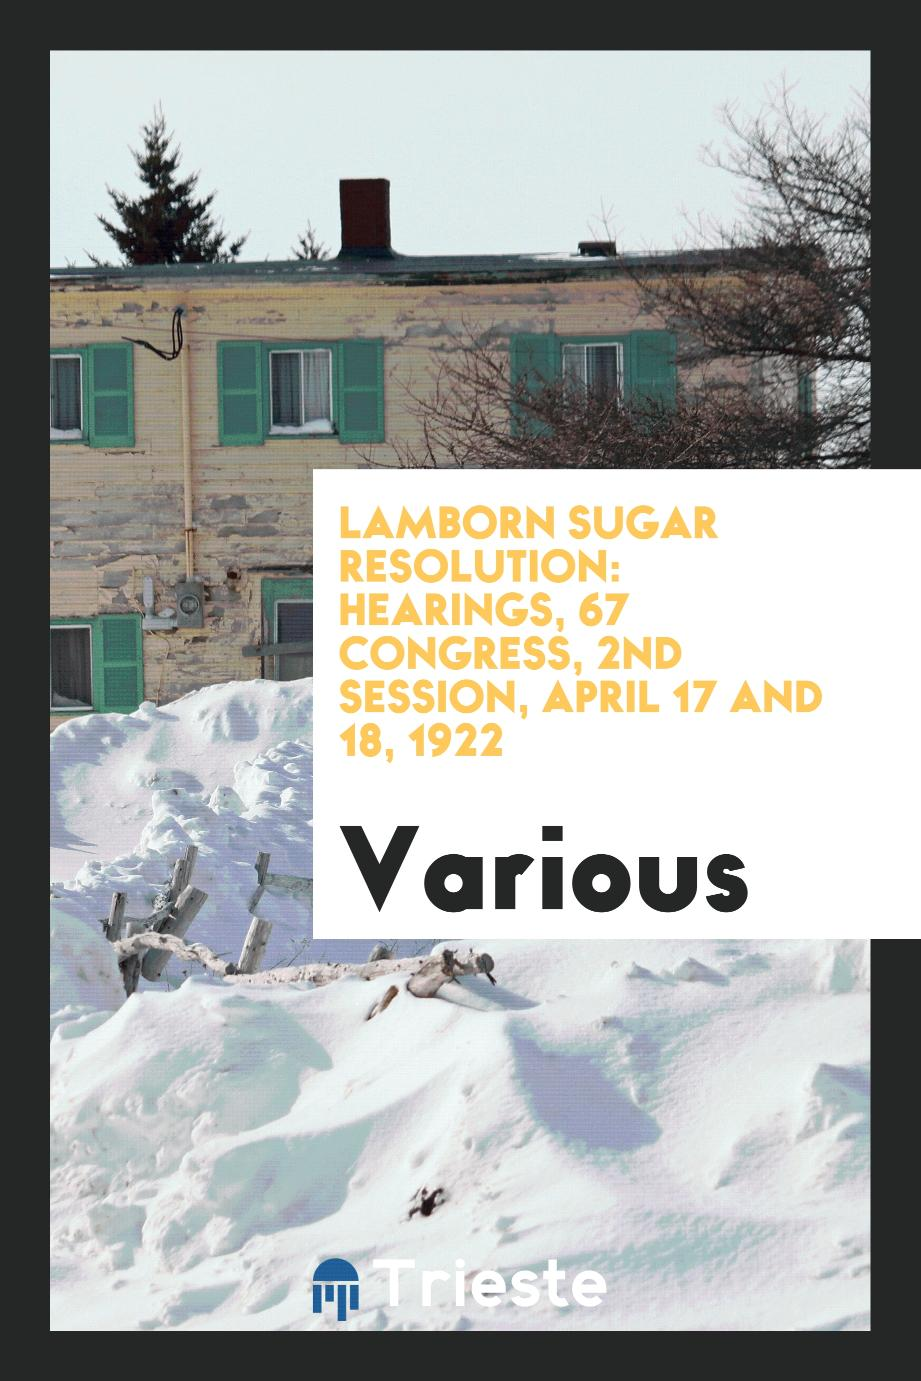 Lamborn Sugar Resolution: Hearings, 67 Congress, 2nd Session, April 17 and 18, 1922